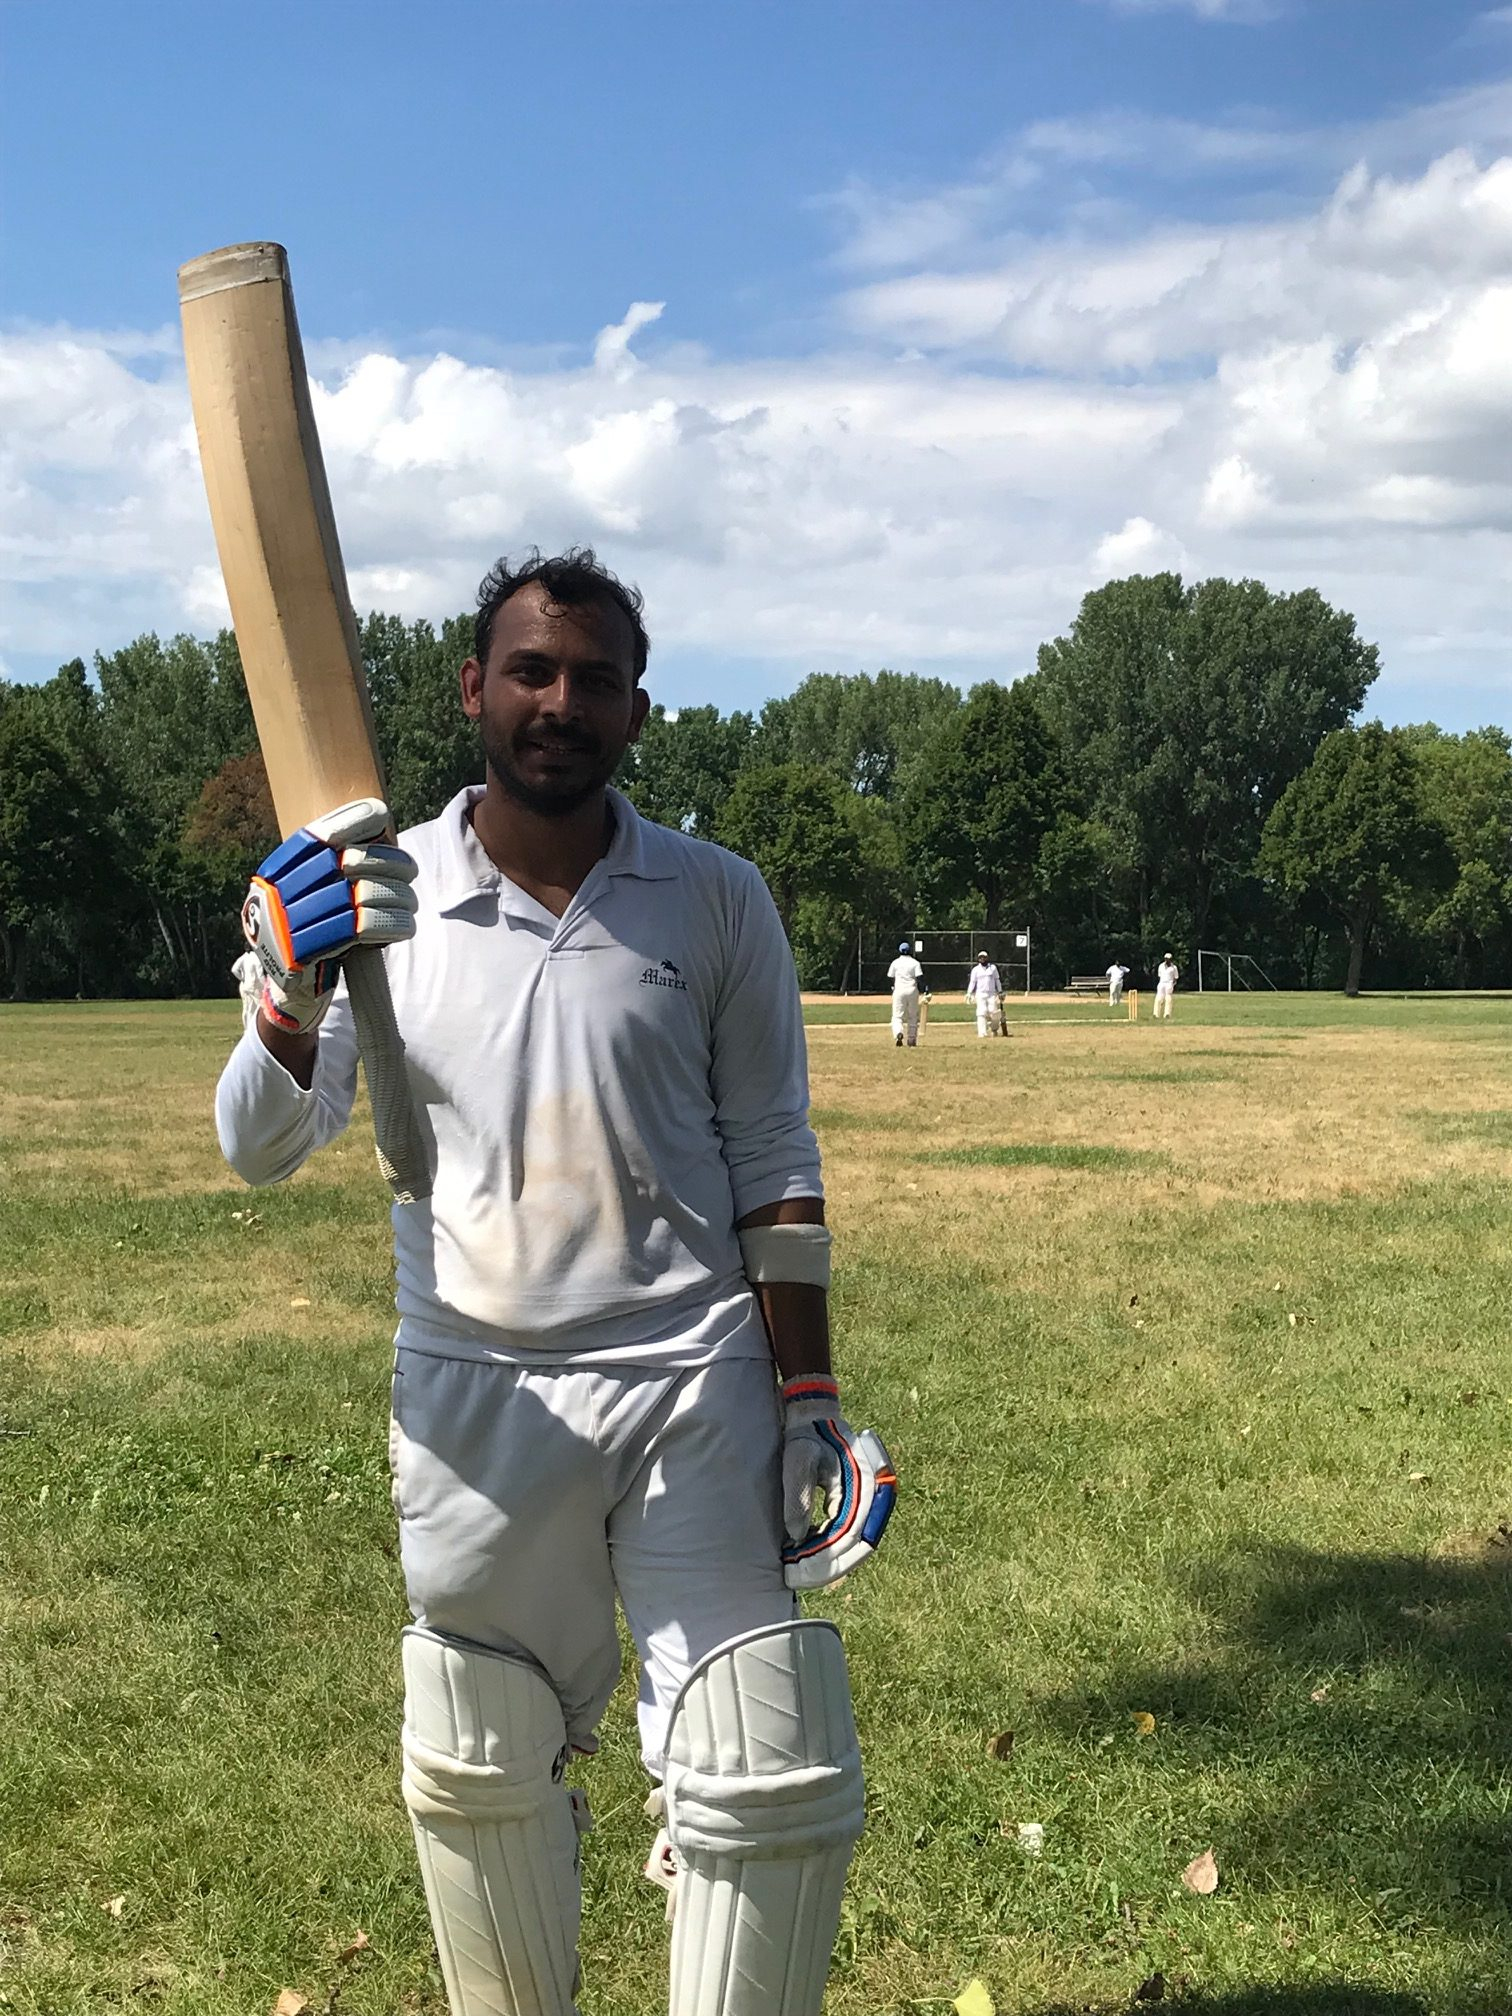 Animesh from Northstars strikes a scintillating century